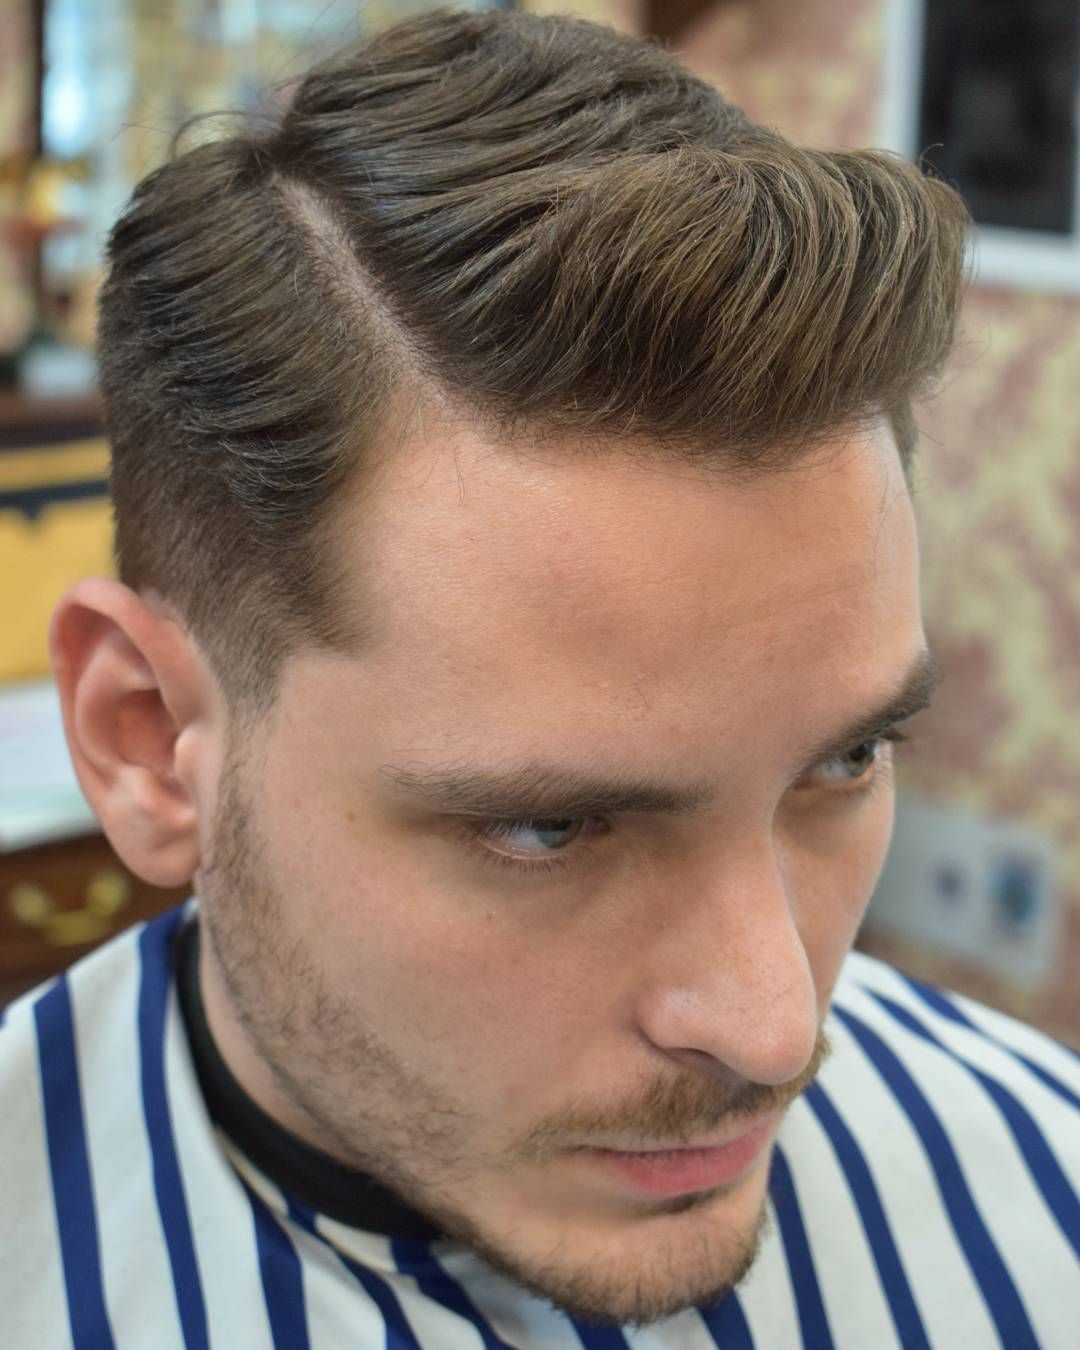 Aleso Low Fade Haircut Medium Hair On Top Mens Hairstyle 2017